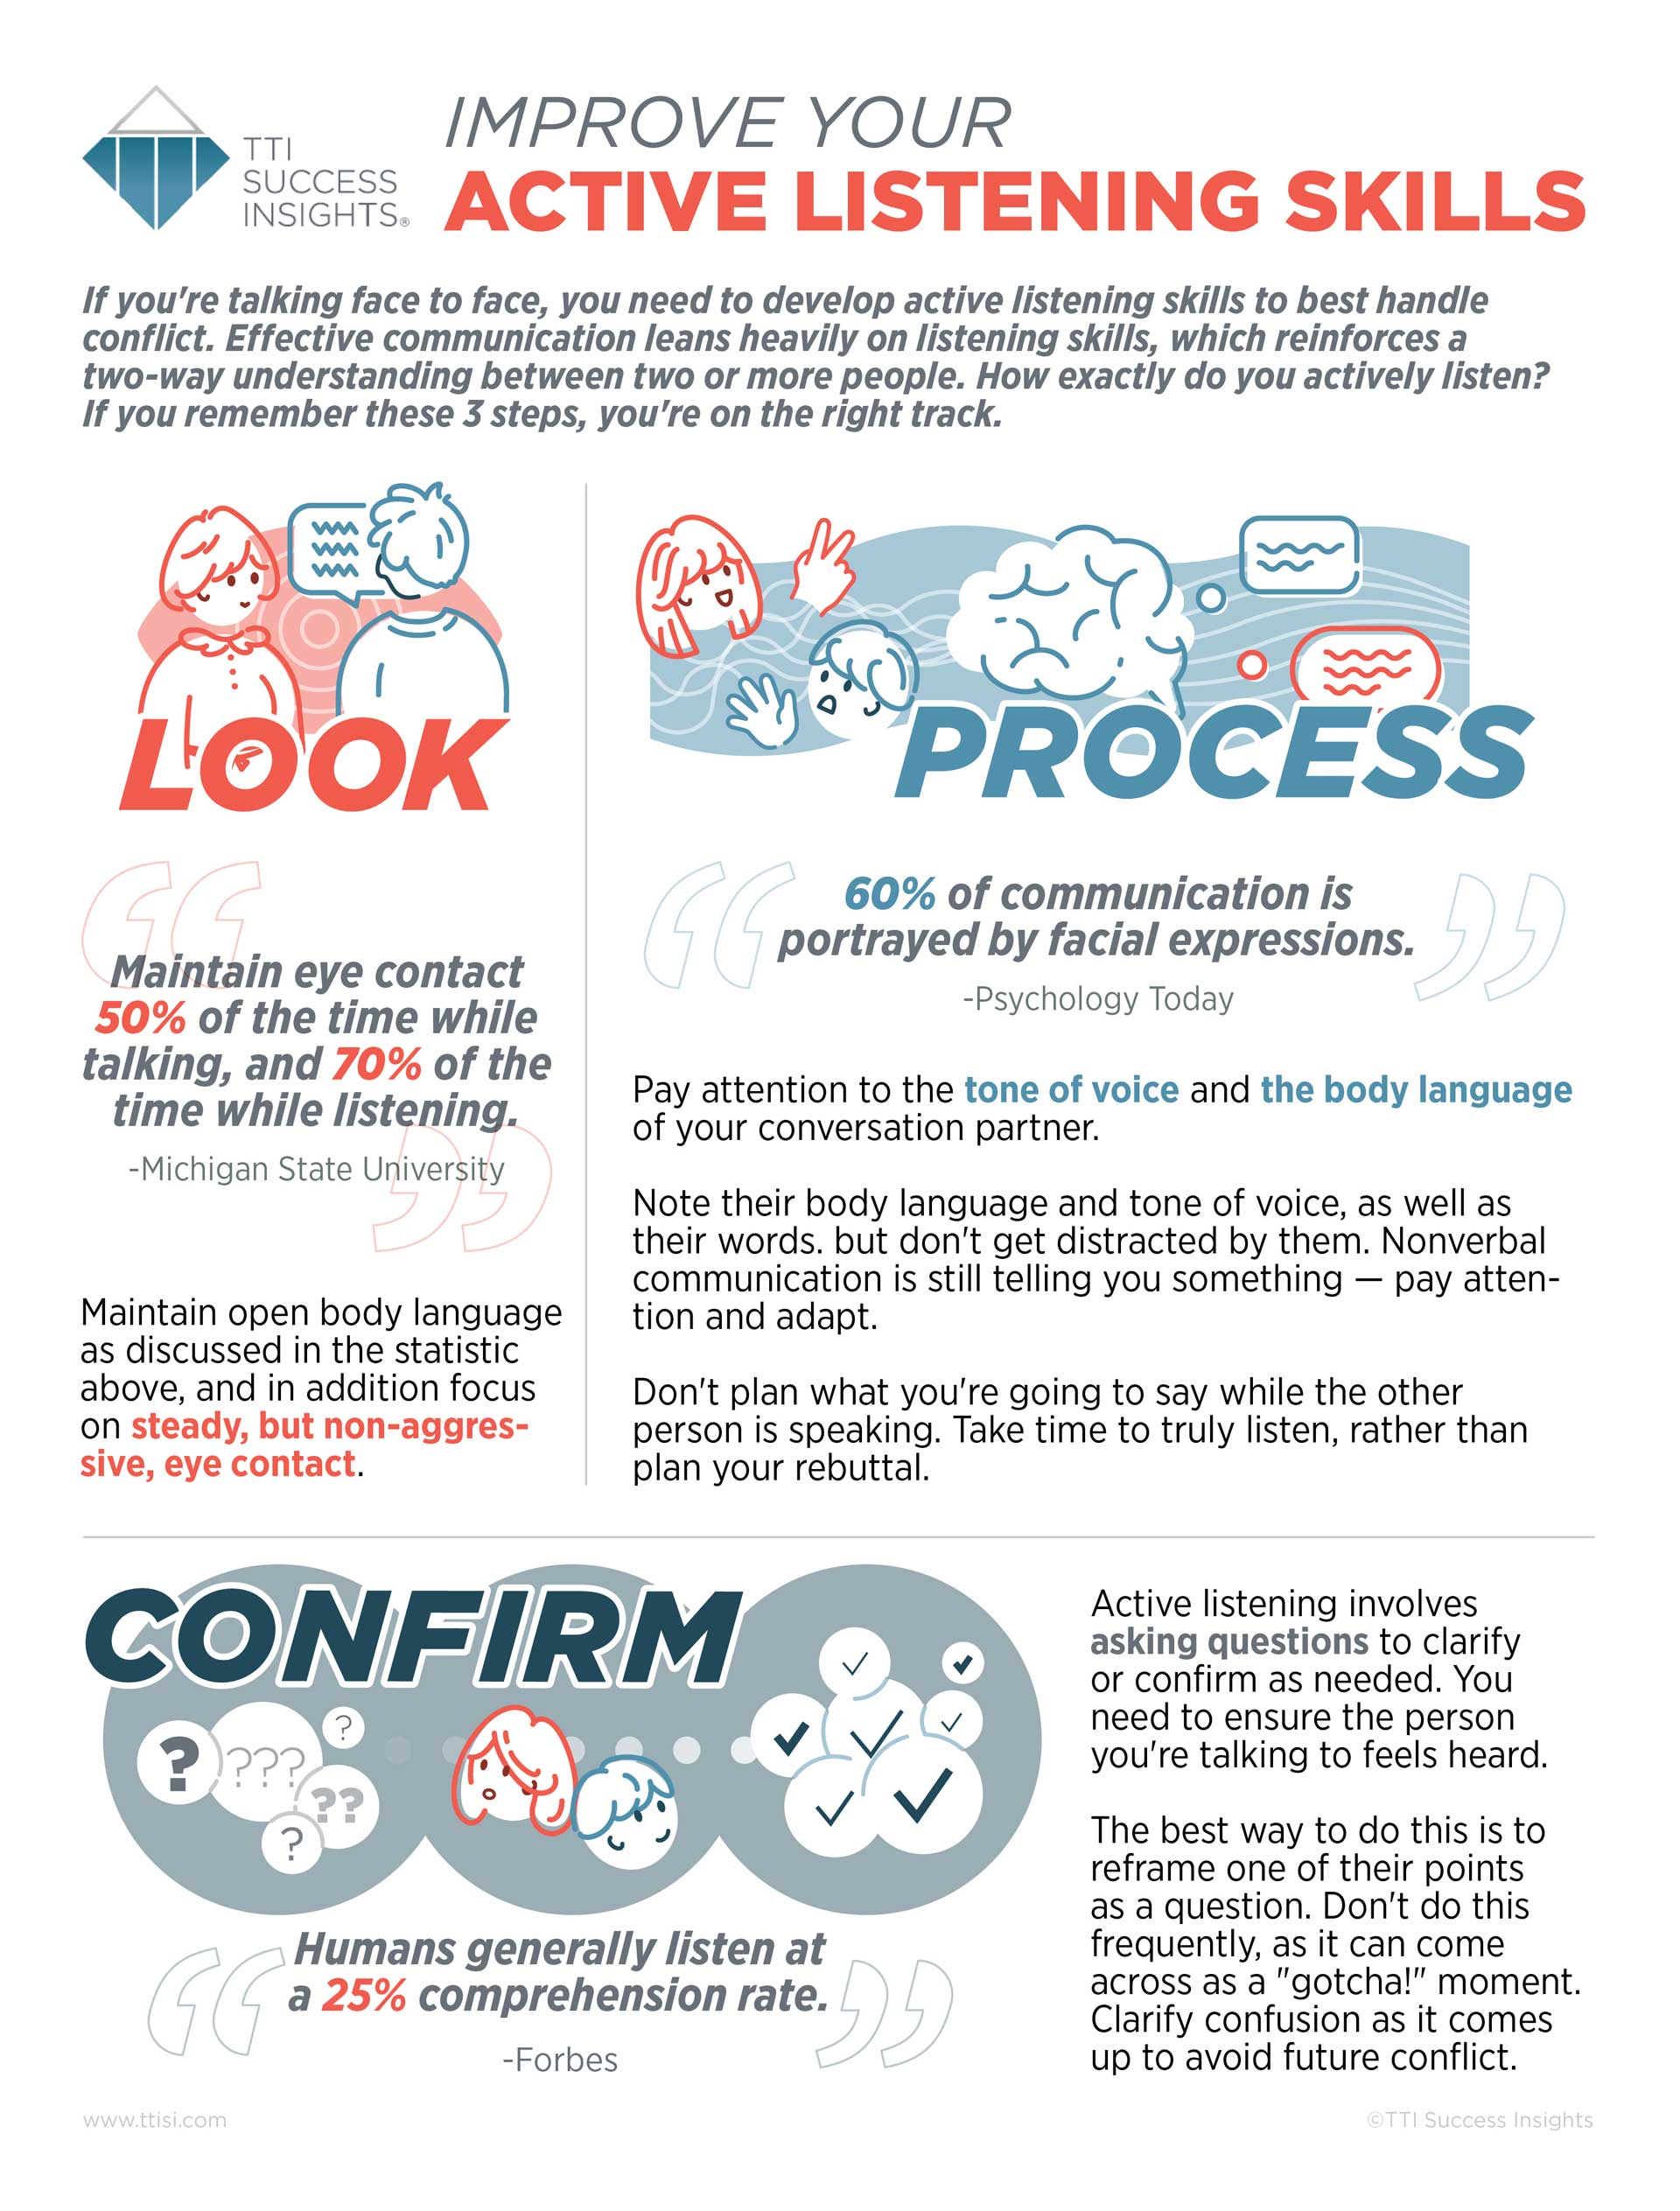 Improve-Your-Active-Listening-Skills-Infographic